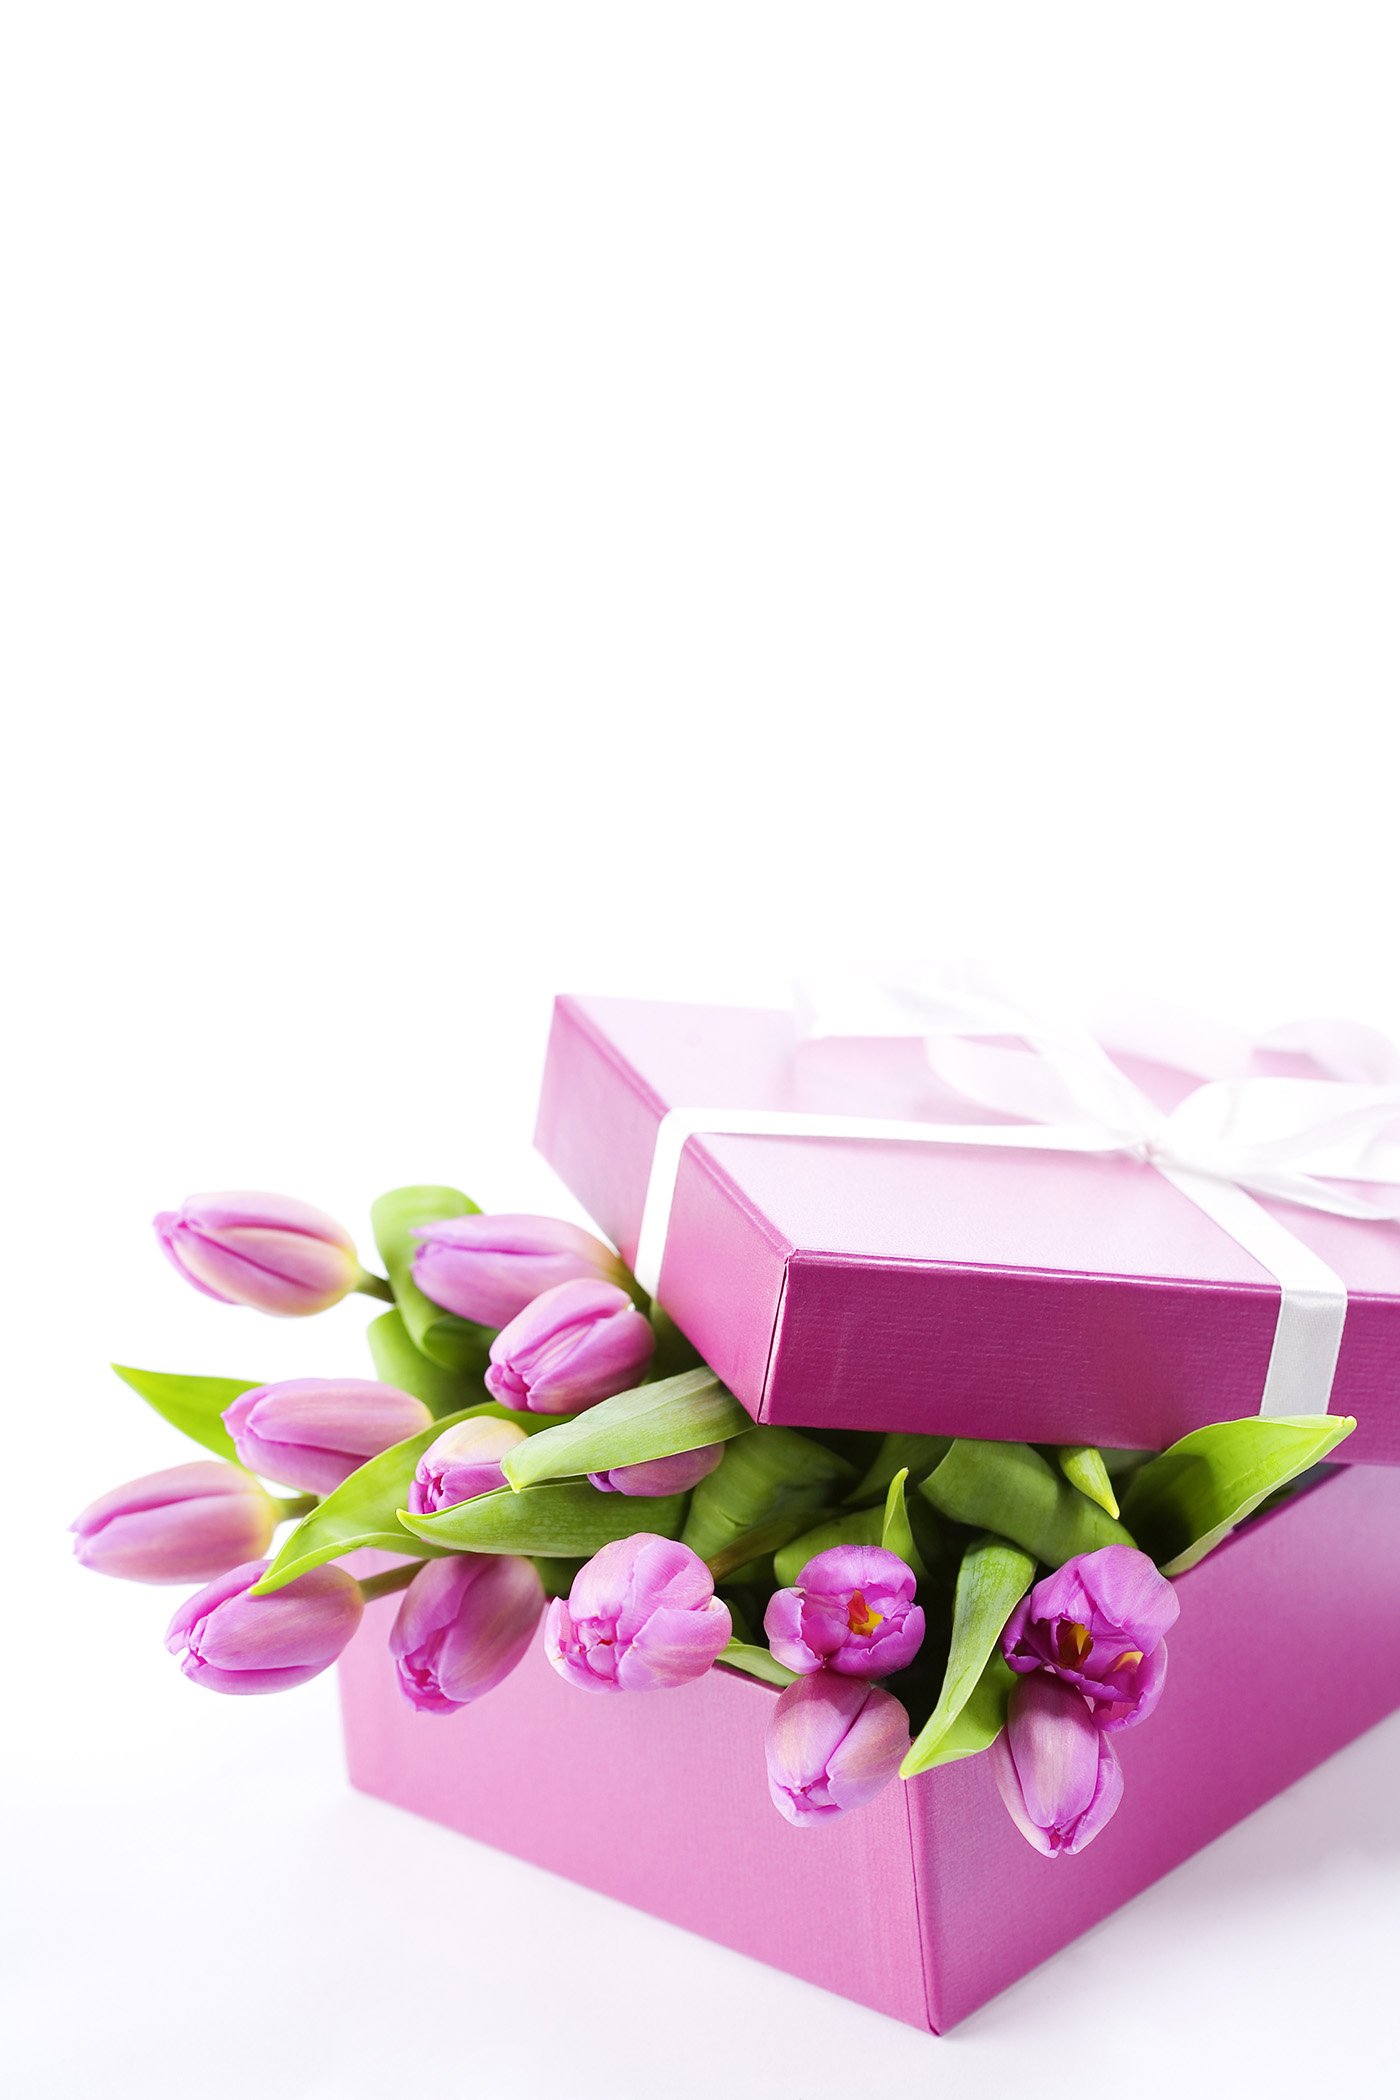 Tulips in gift box 50454